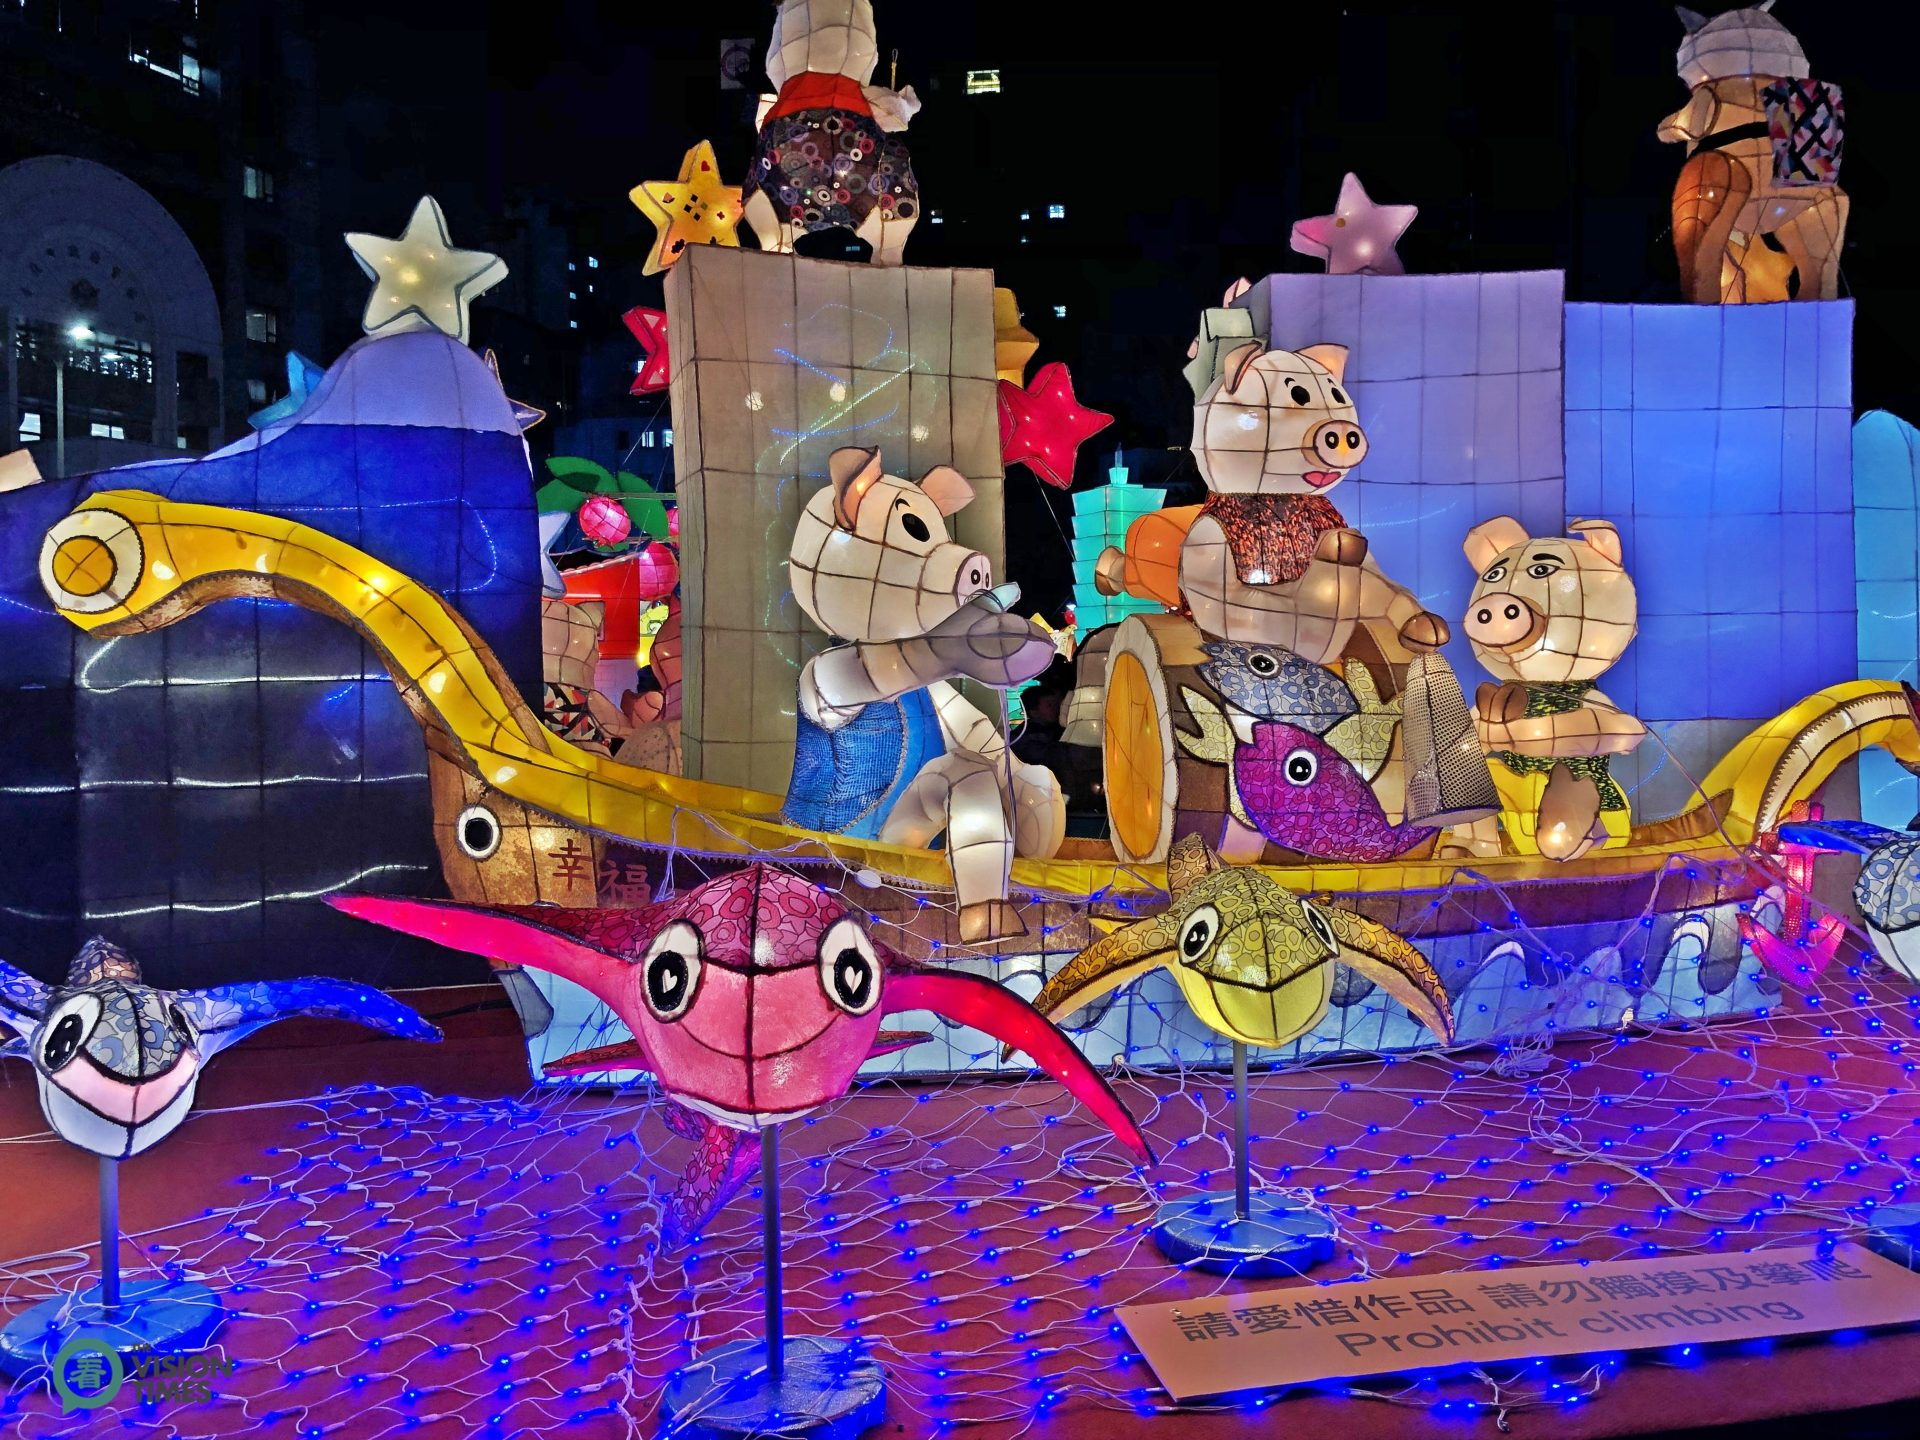 An award-winning lantern displayed at the 2019 Taipei Lantern Festival. (Image: Billy Shyu / Vision Times)